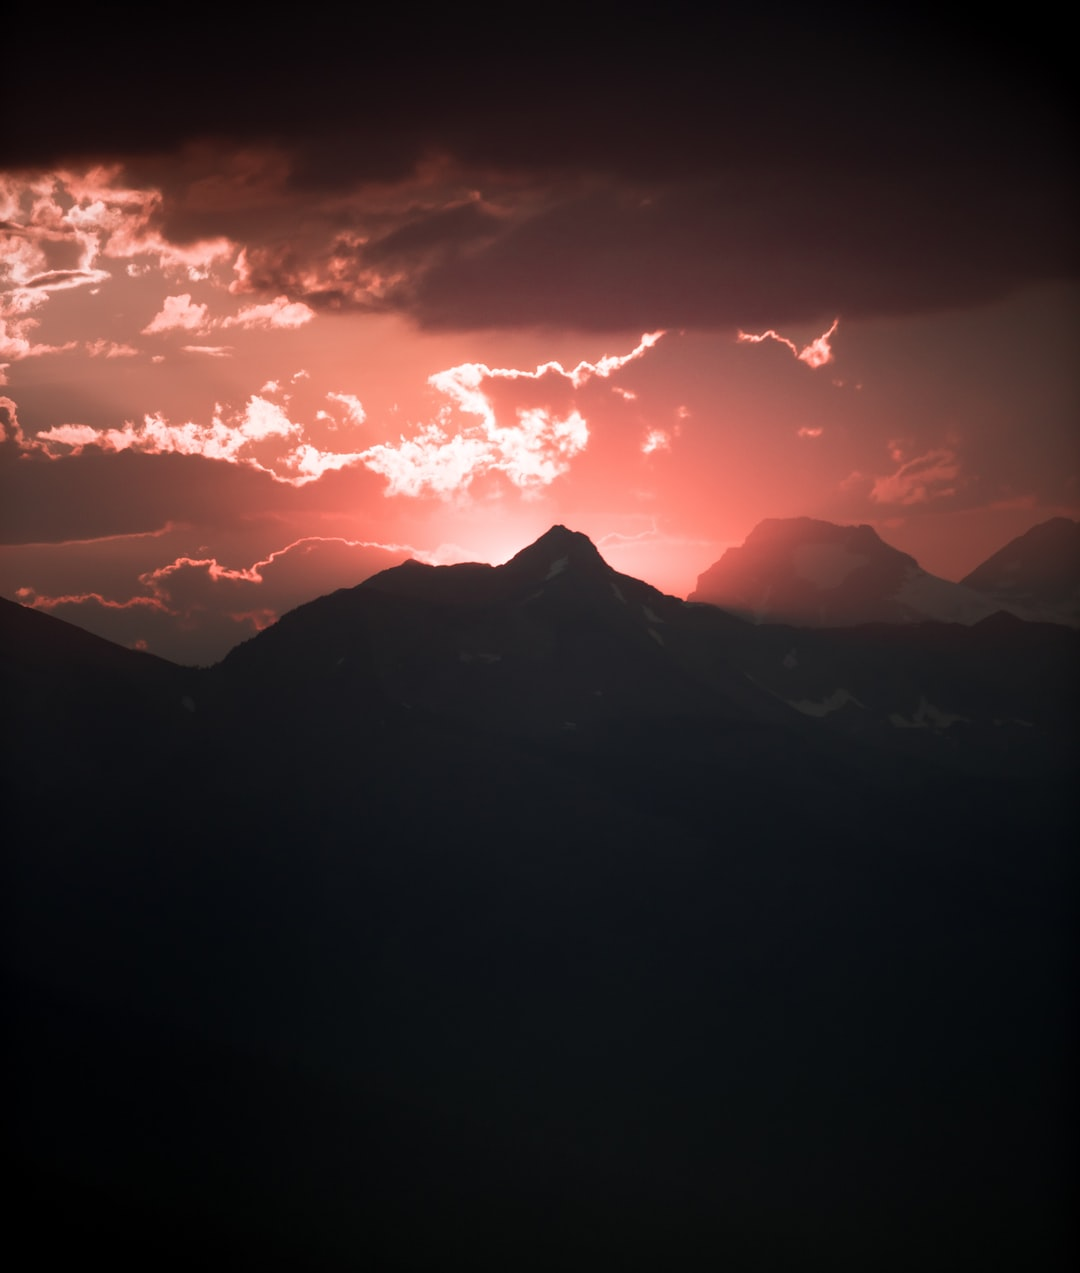 The rain had just passed and the sun had just set behind this peak. A hazy sky, courtesy of forest fires to the north, made for quite a glowing moment. There are not many times when something leaves you truly speechless, but this was certainly one of the few.